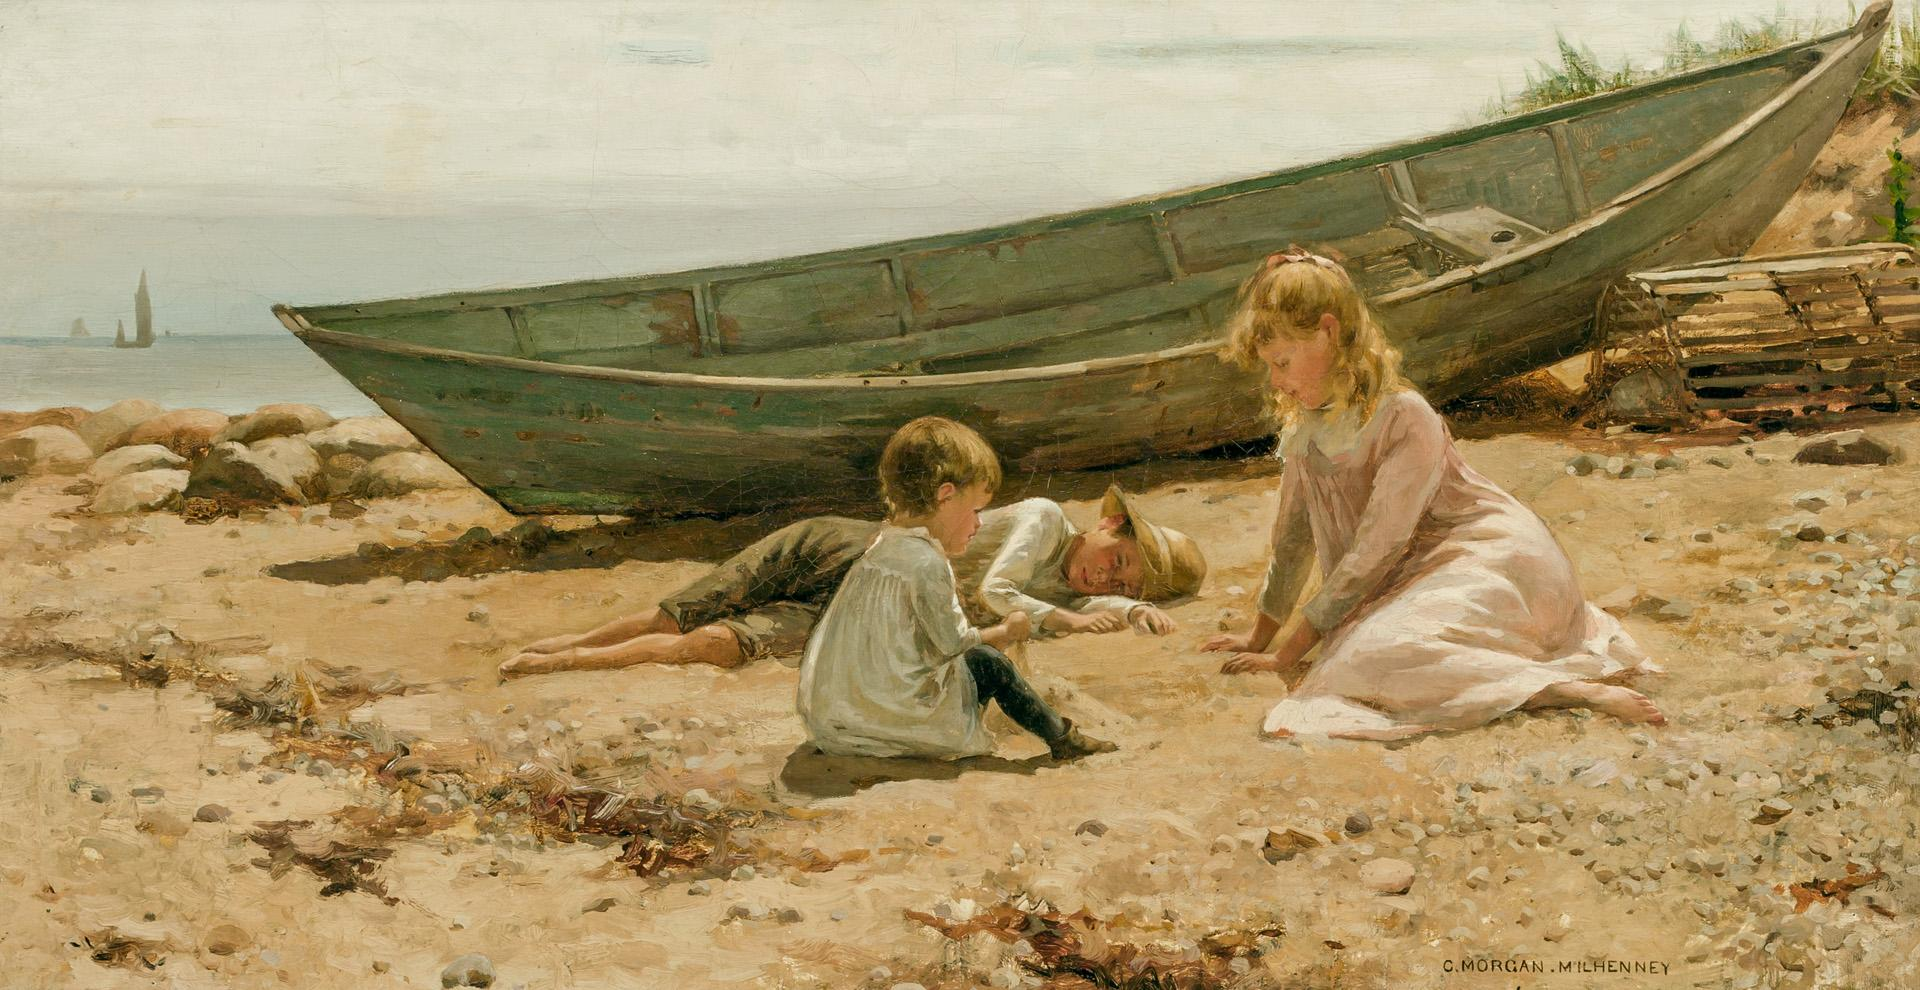 """CHARLES MORGAN MCILHENNEY, American (1858-1904), Summer Afternoon by the Shore, oil on canvas, signed lower right """"C. Morgan McIlhen..."""